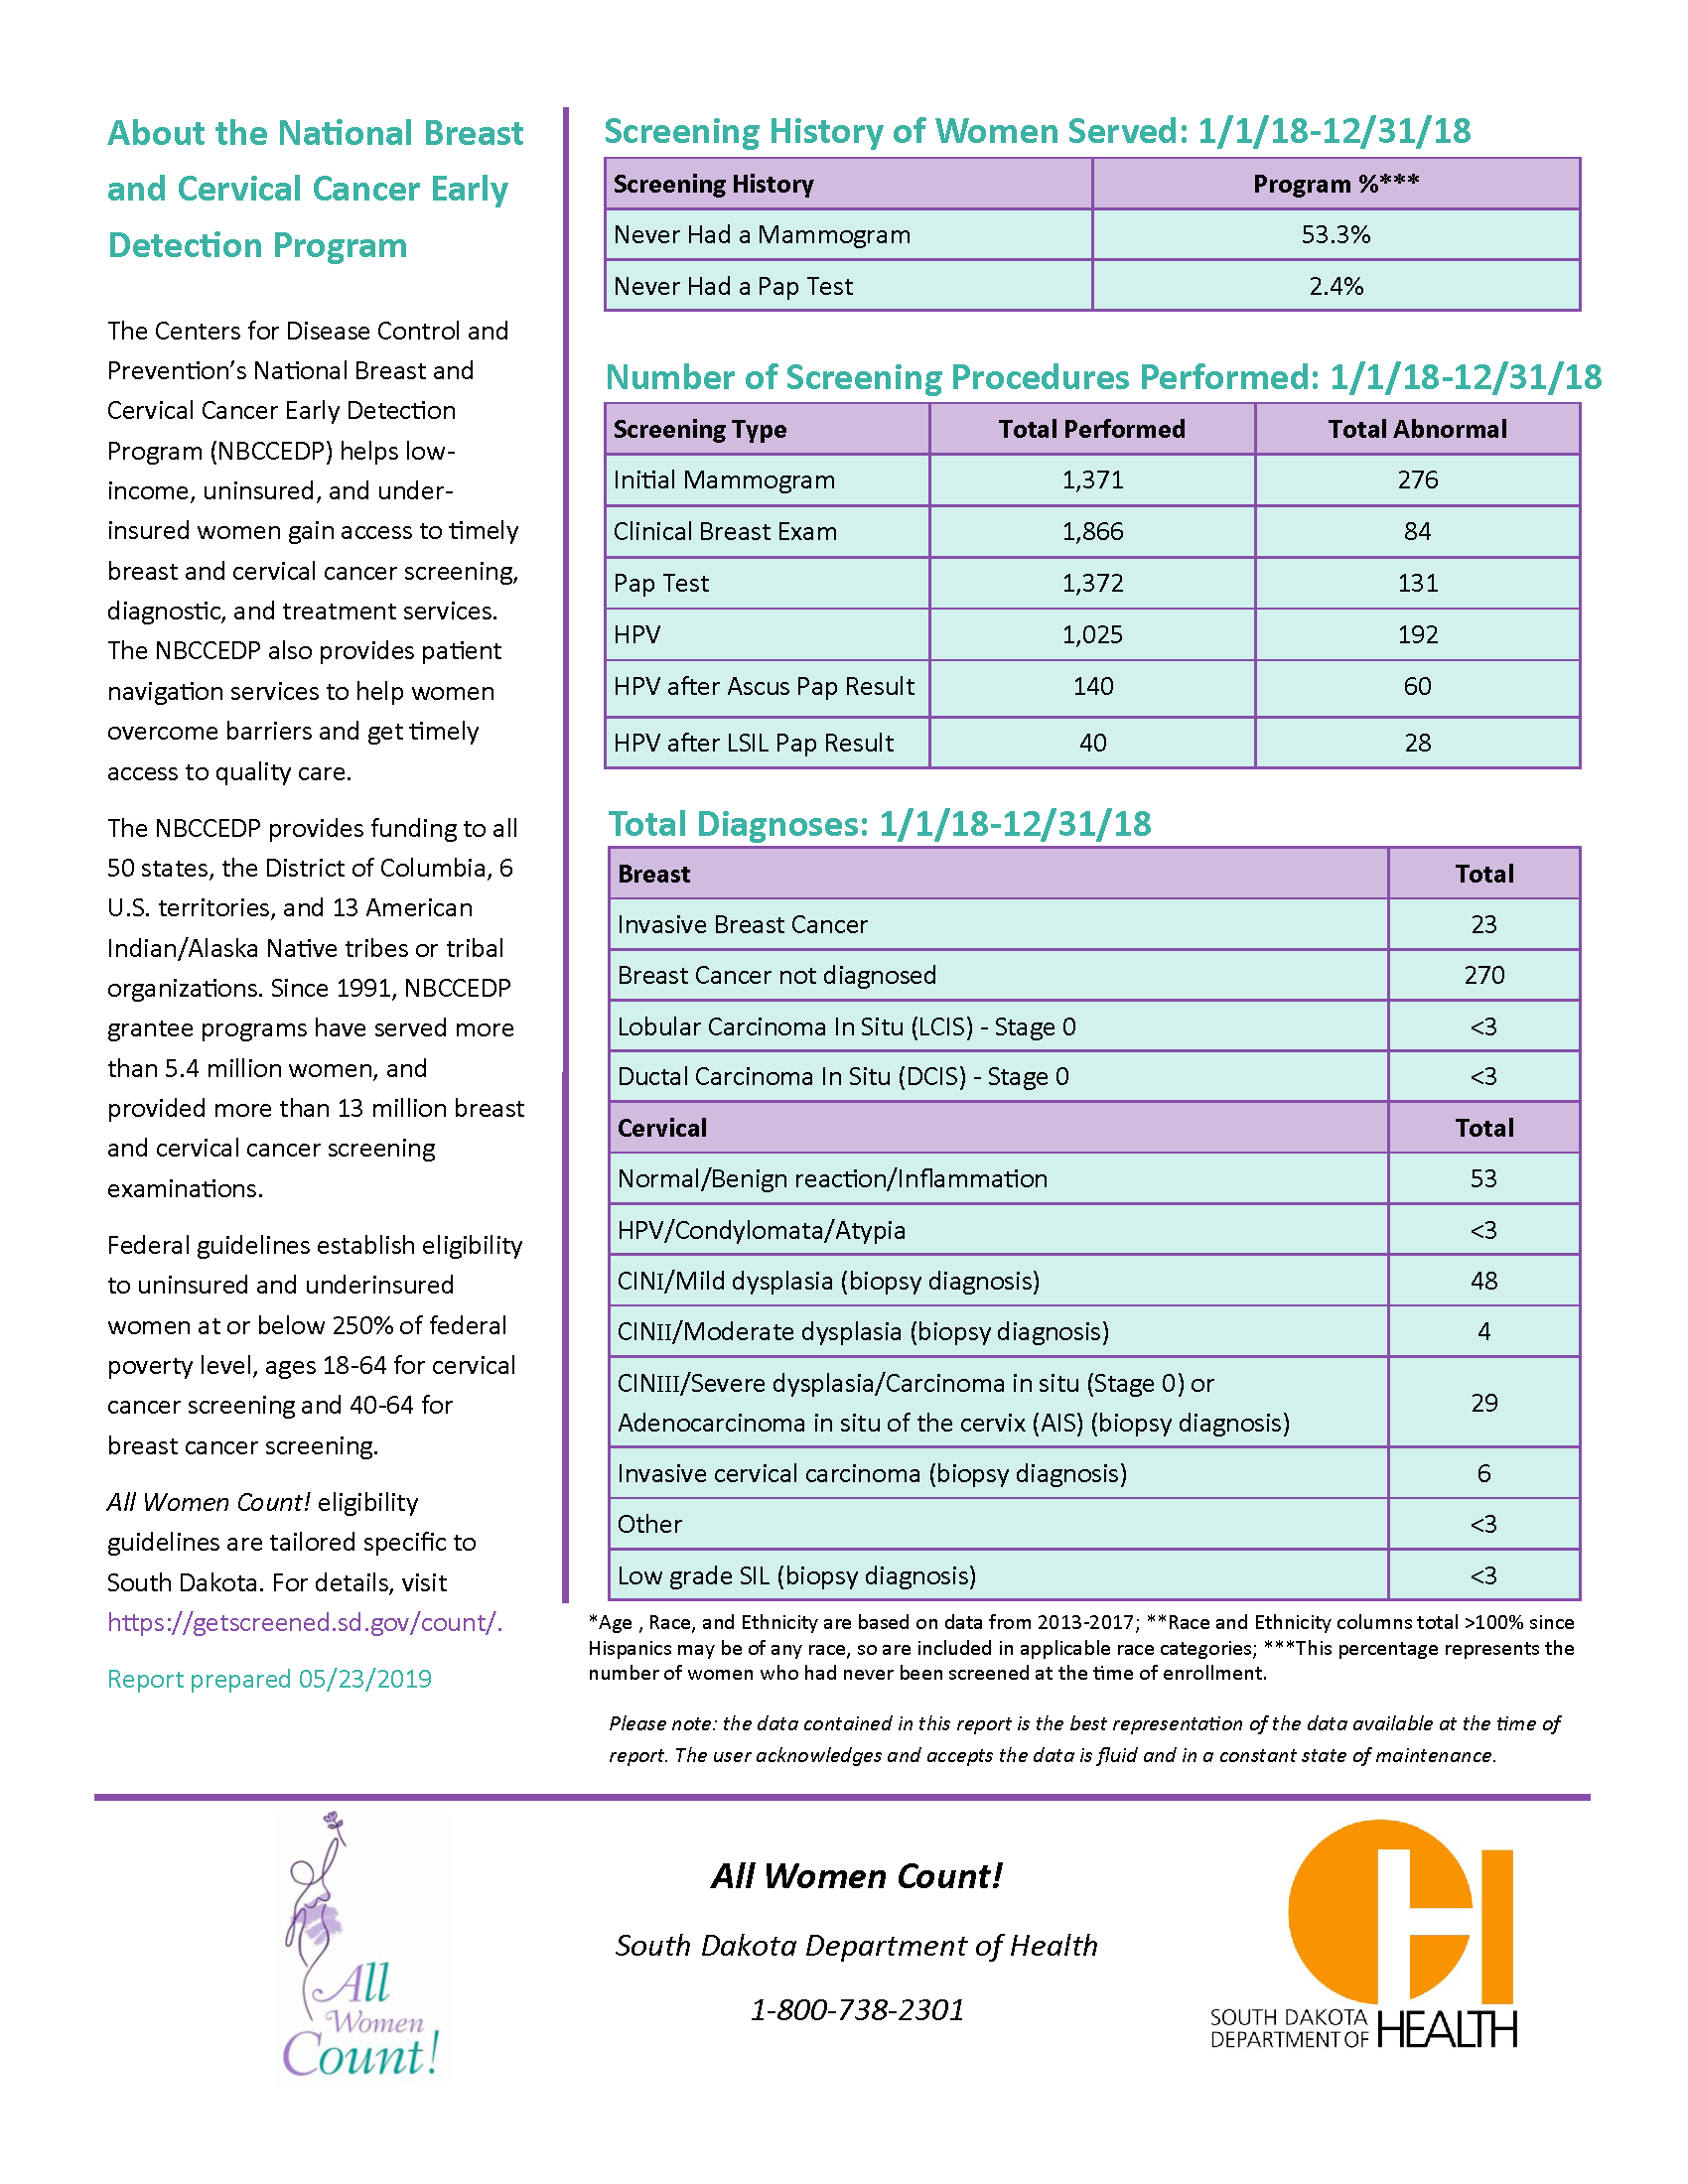 South Dakota Breast and Cervical Cancer Early Detection Program Stakeholder Report (page 2)